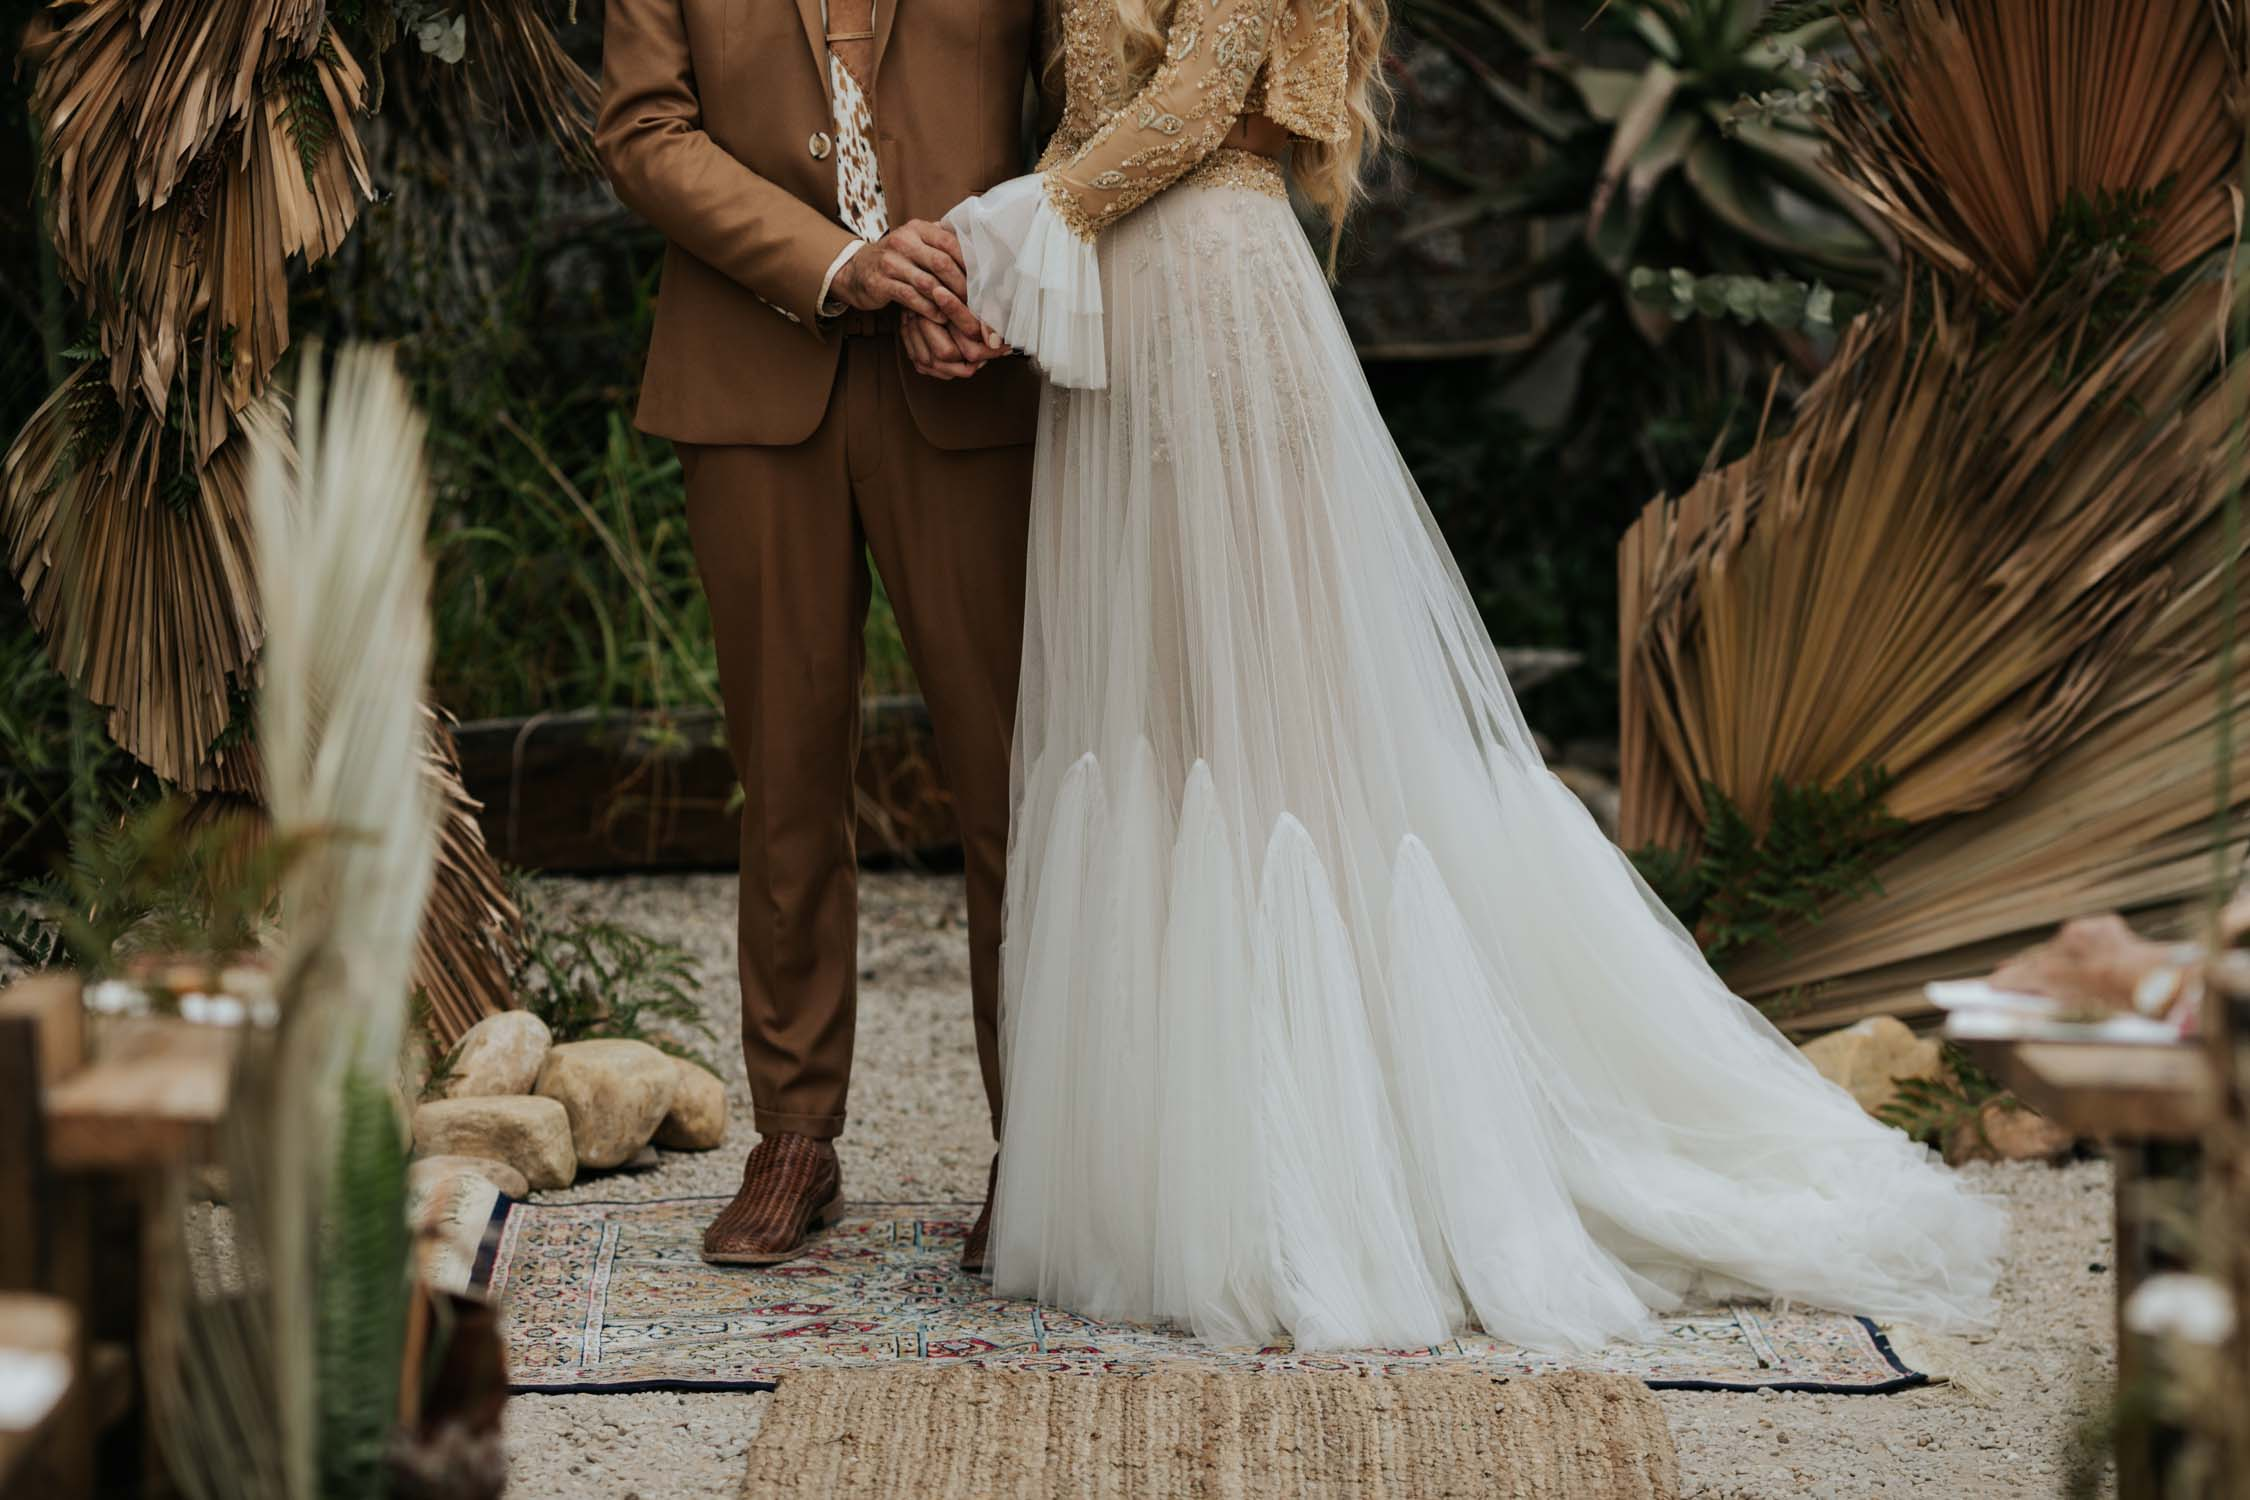 Boho bride wedding dress with flared long sleeves, sheer skirt and gold detailed top